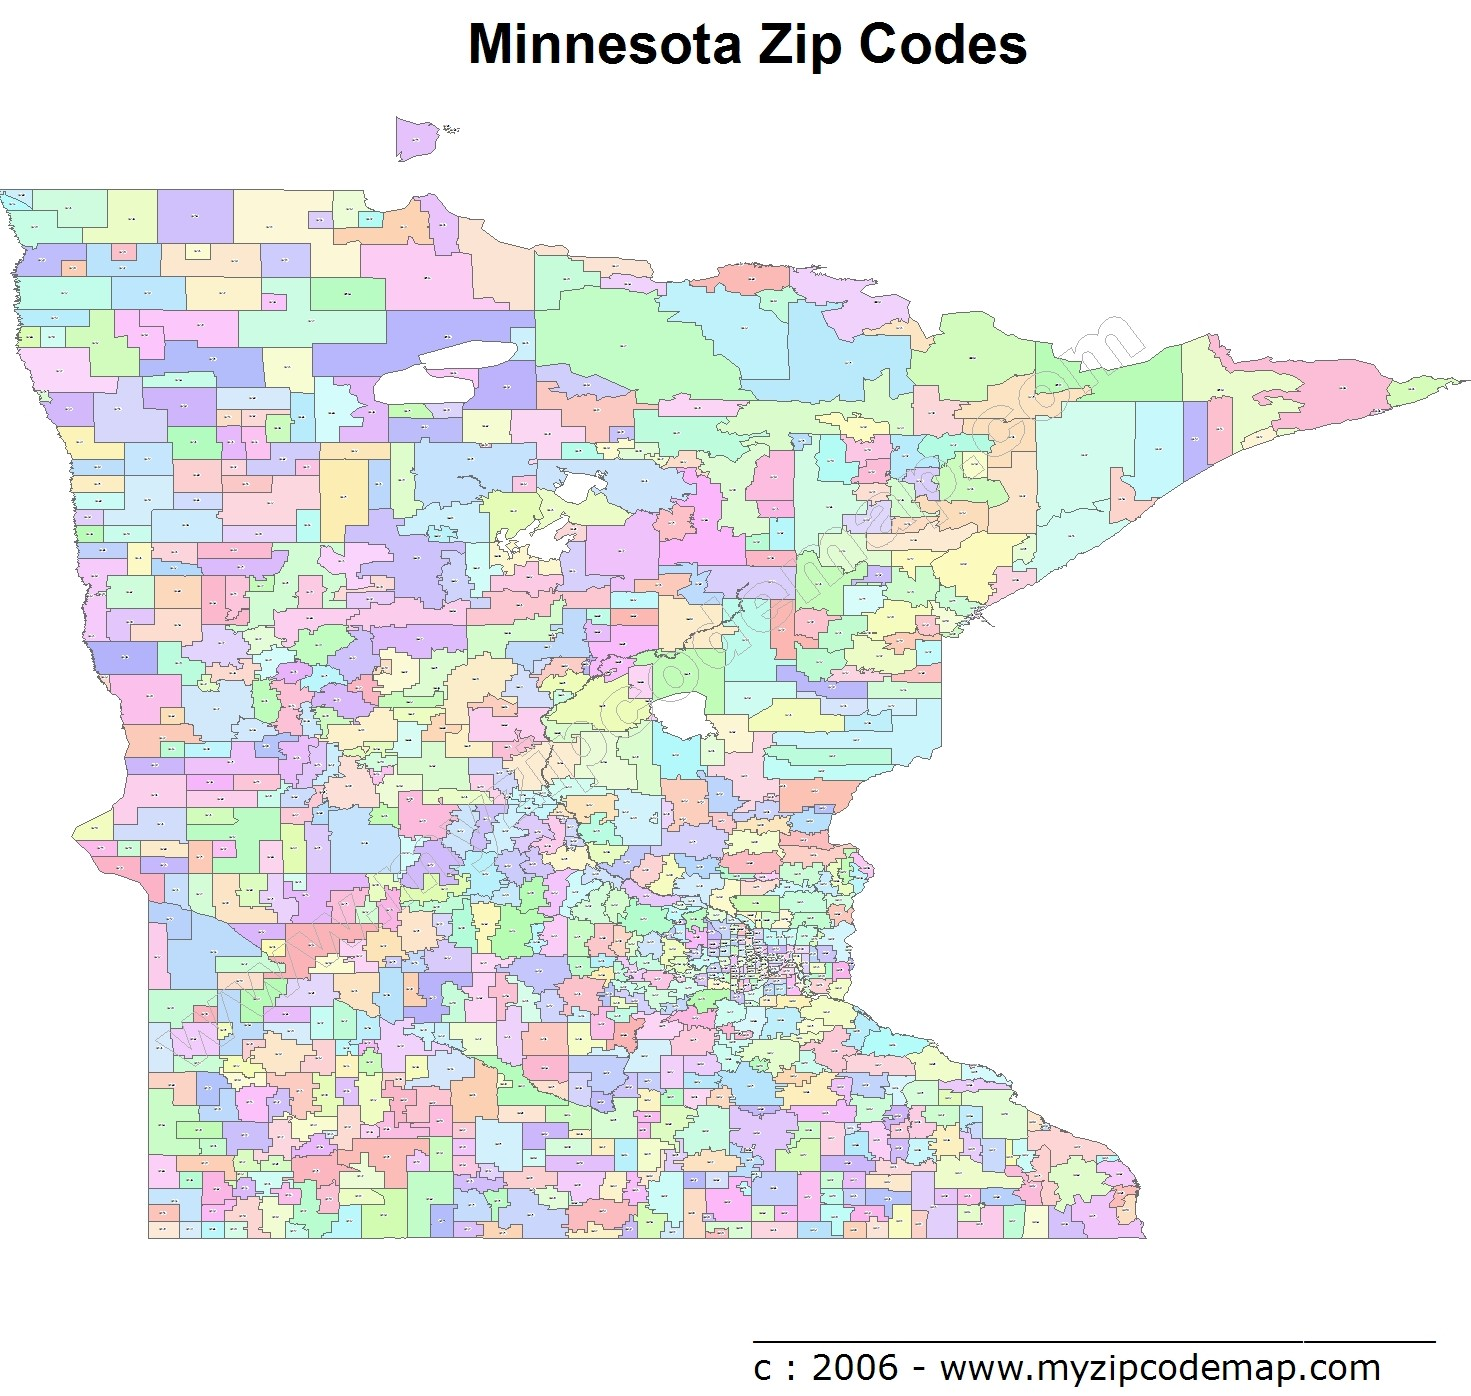 Minnesota (MN) Zip Code Map